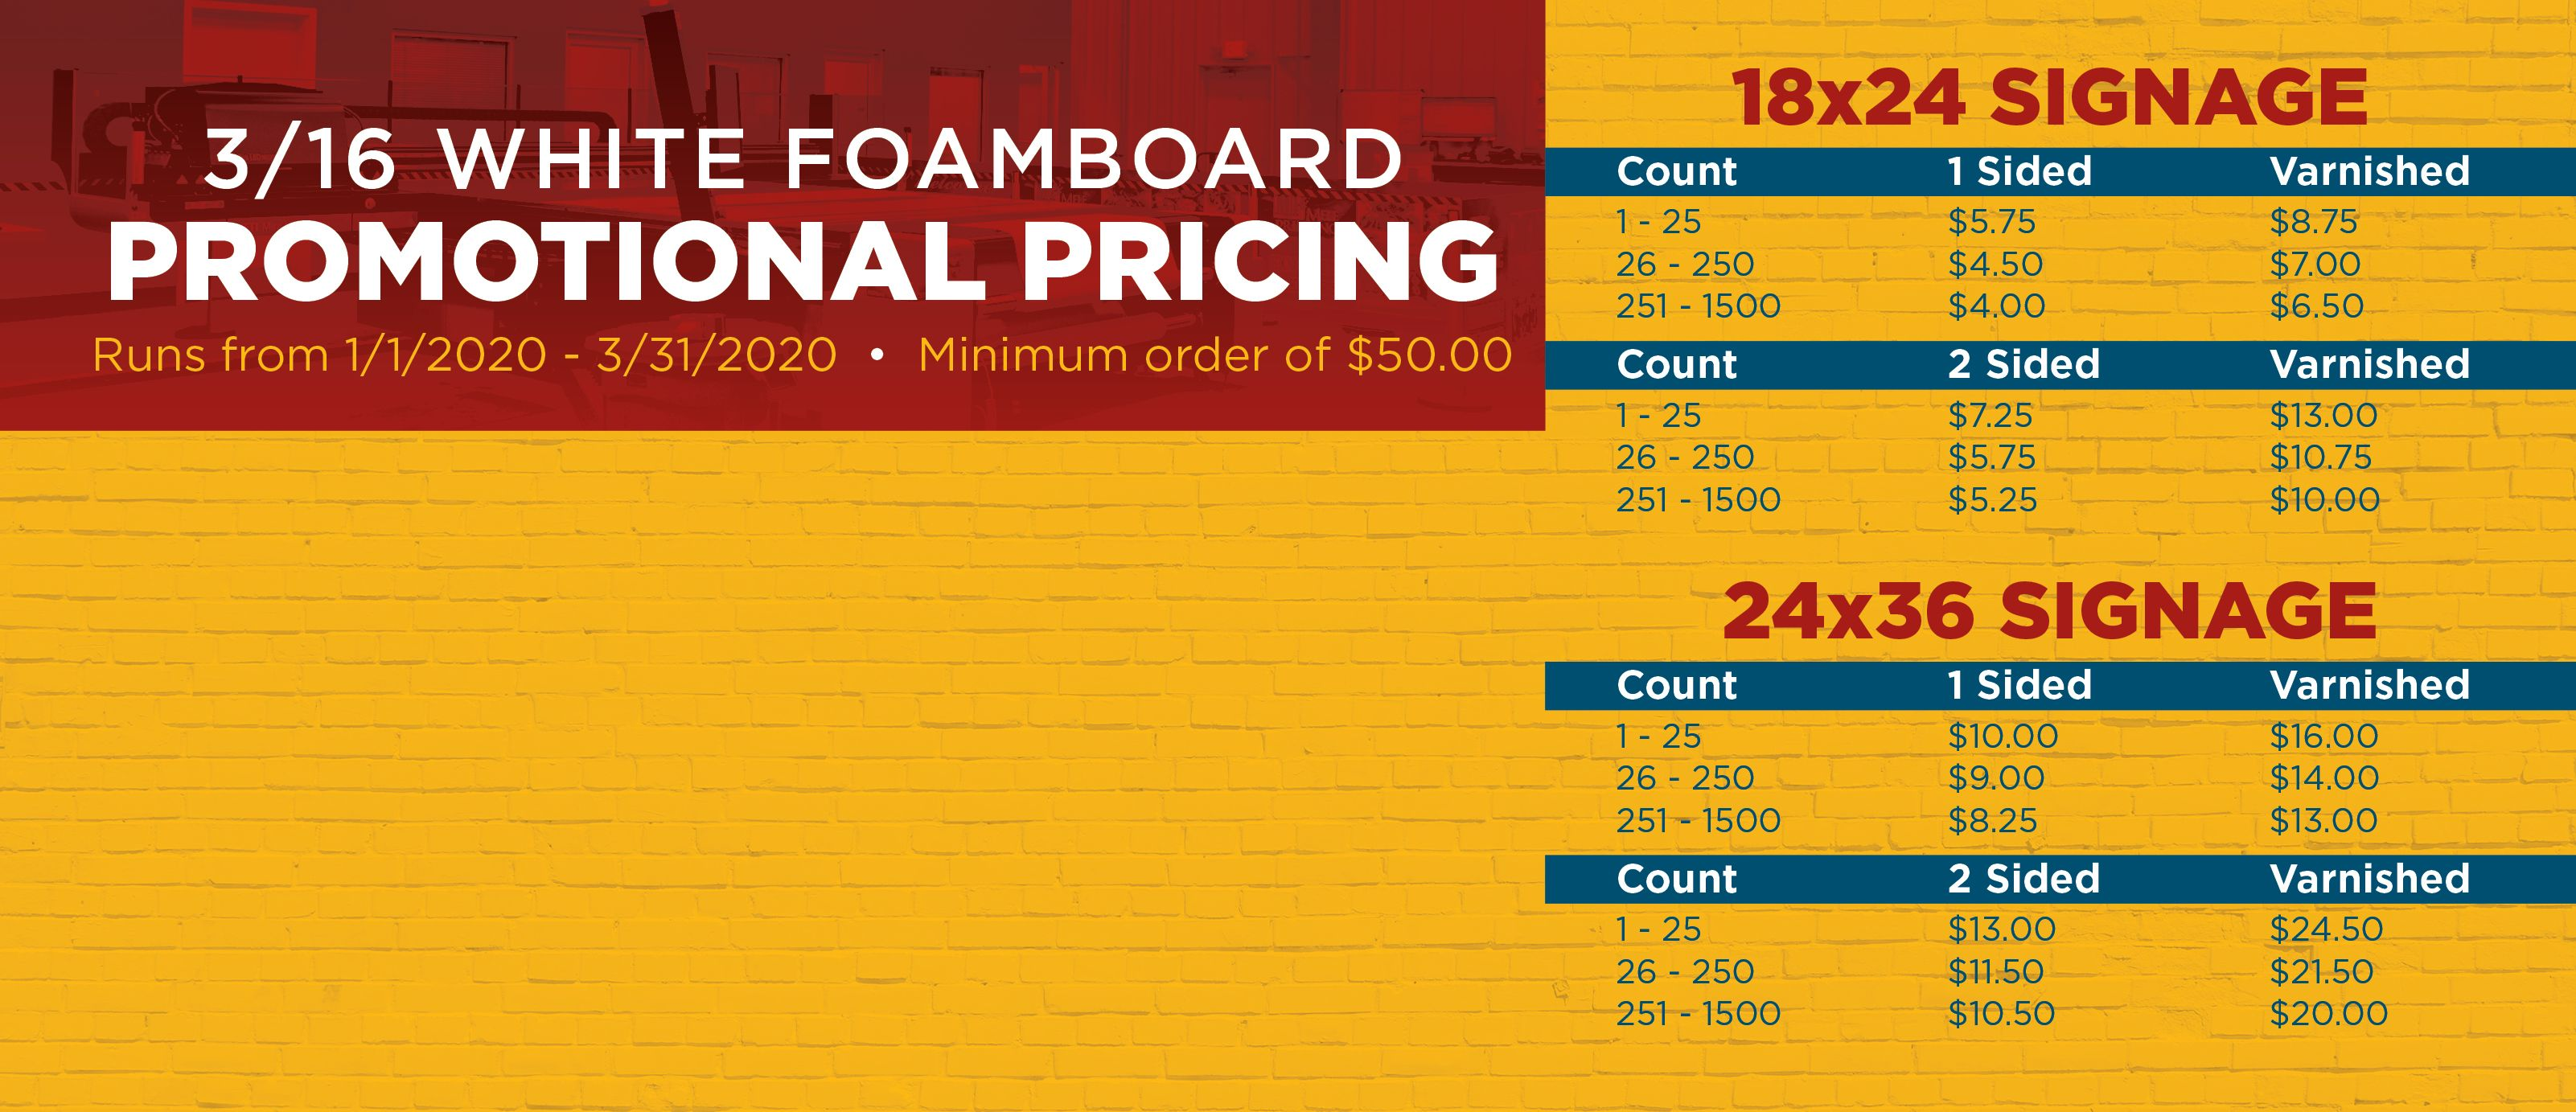 Promotional Foamboard Pricing